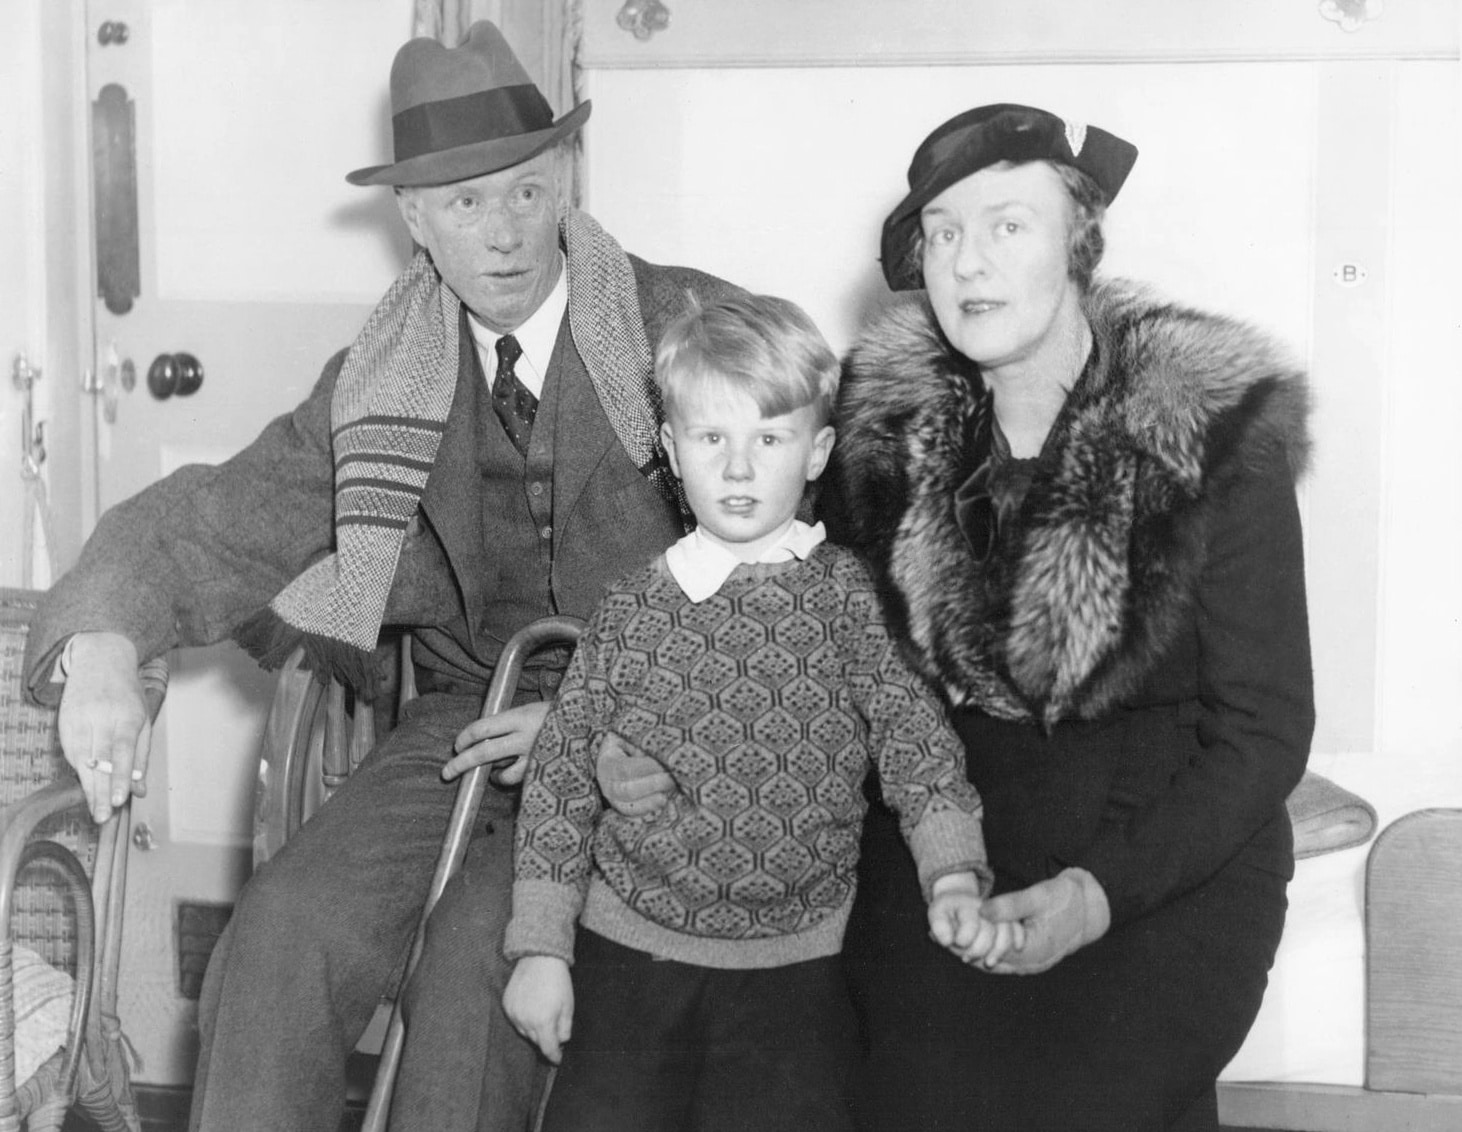 1935 Press Photo Sinclair Lewis with his wife Dorothy Thompson and son. Photo: Unknown. Public Domain.